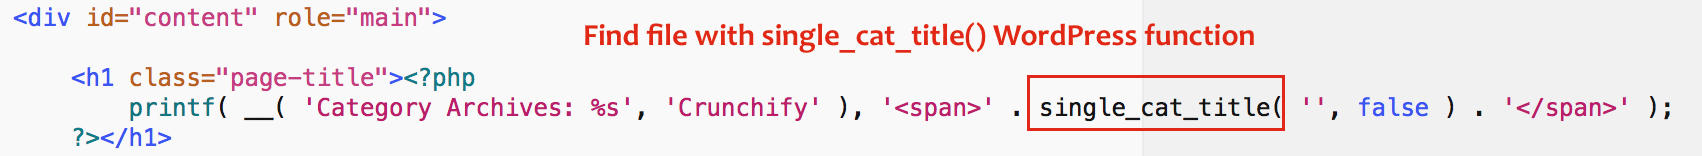 Find file with single_cat_title WordPress function